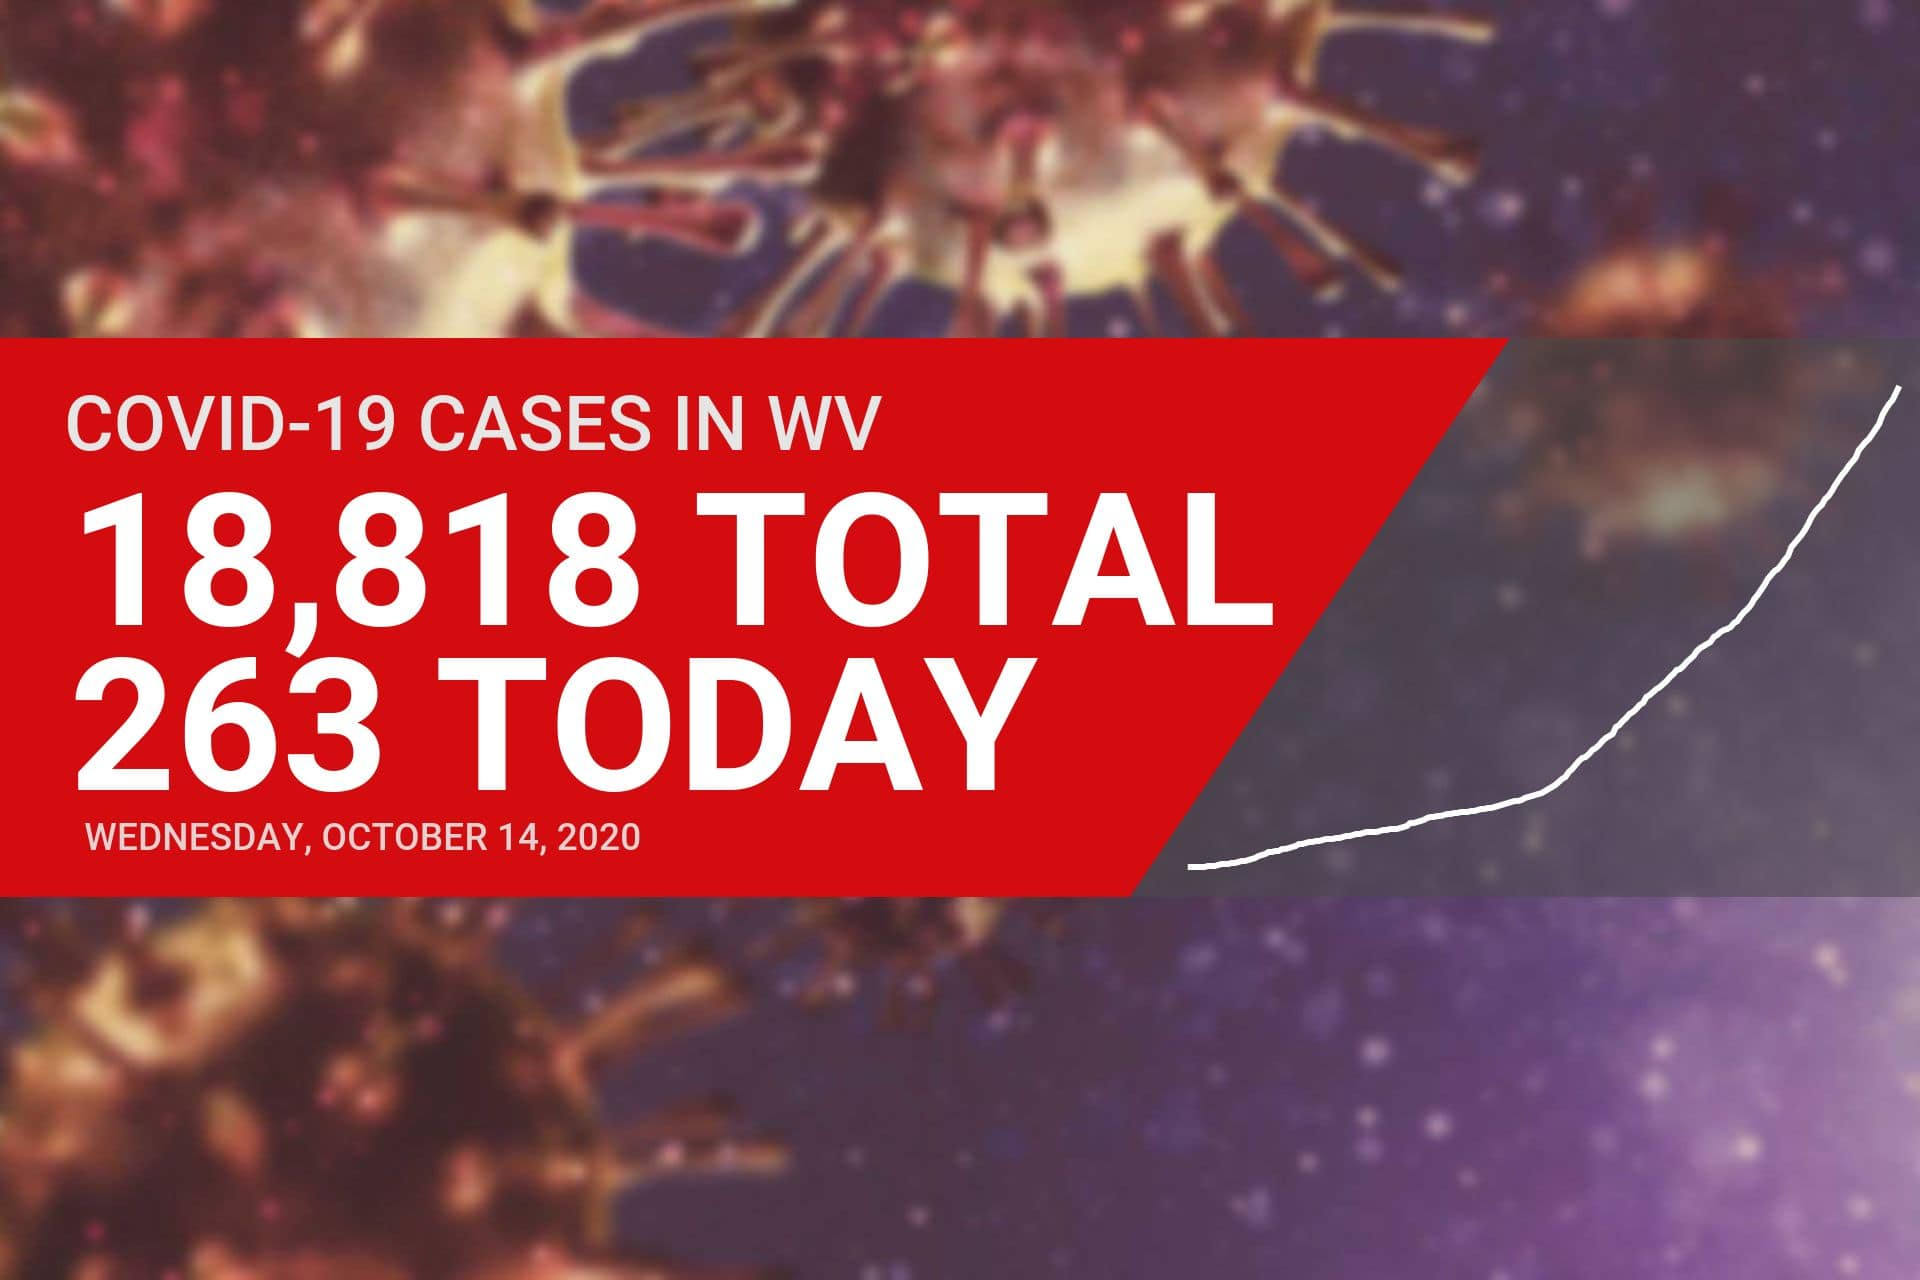 Nine new COVID-19 cases reported in Upshur County on Wednesday as state hits new highs